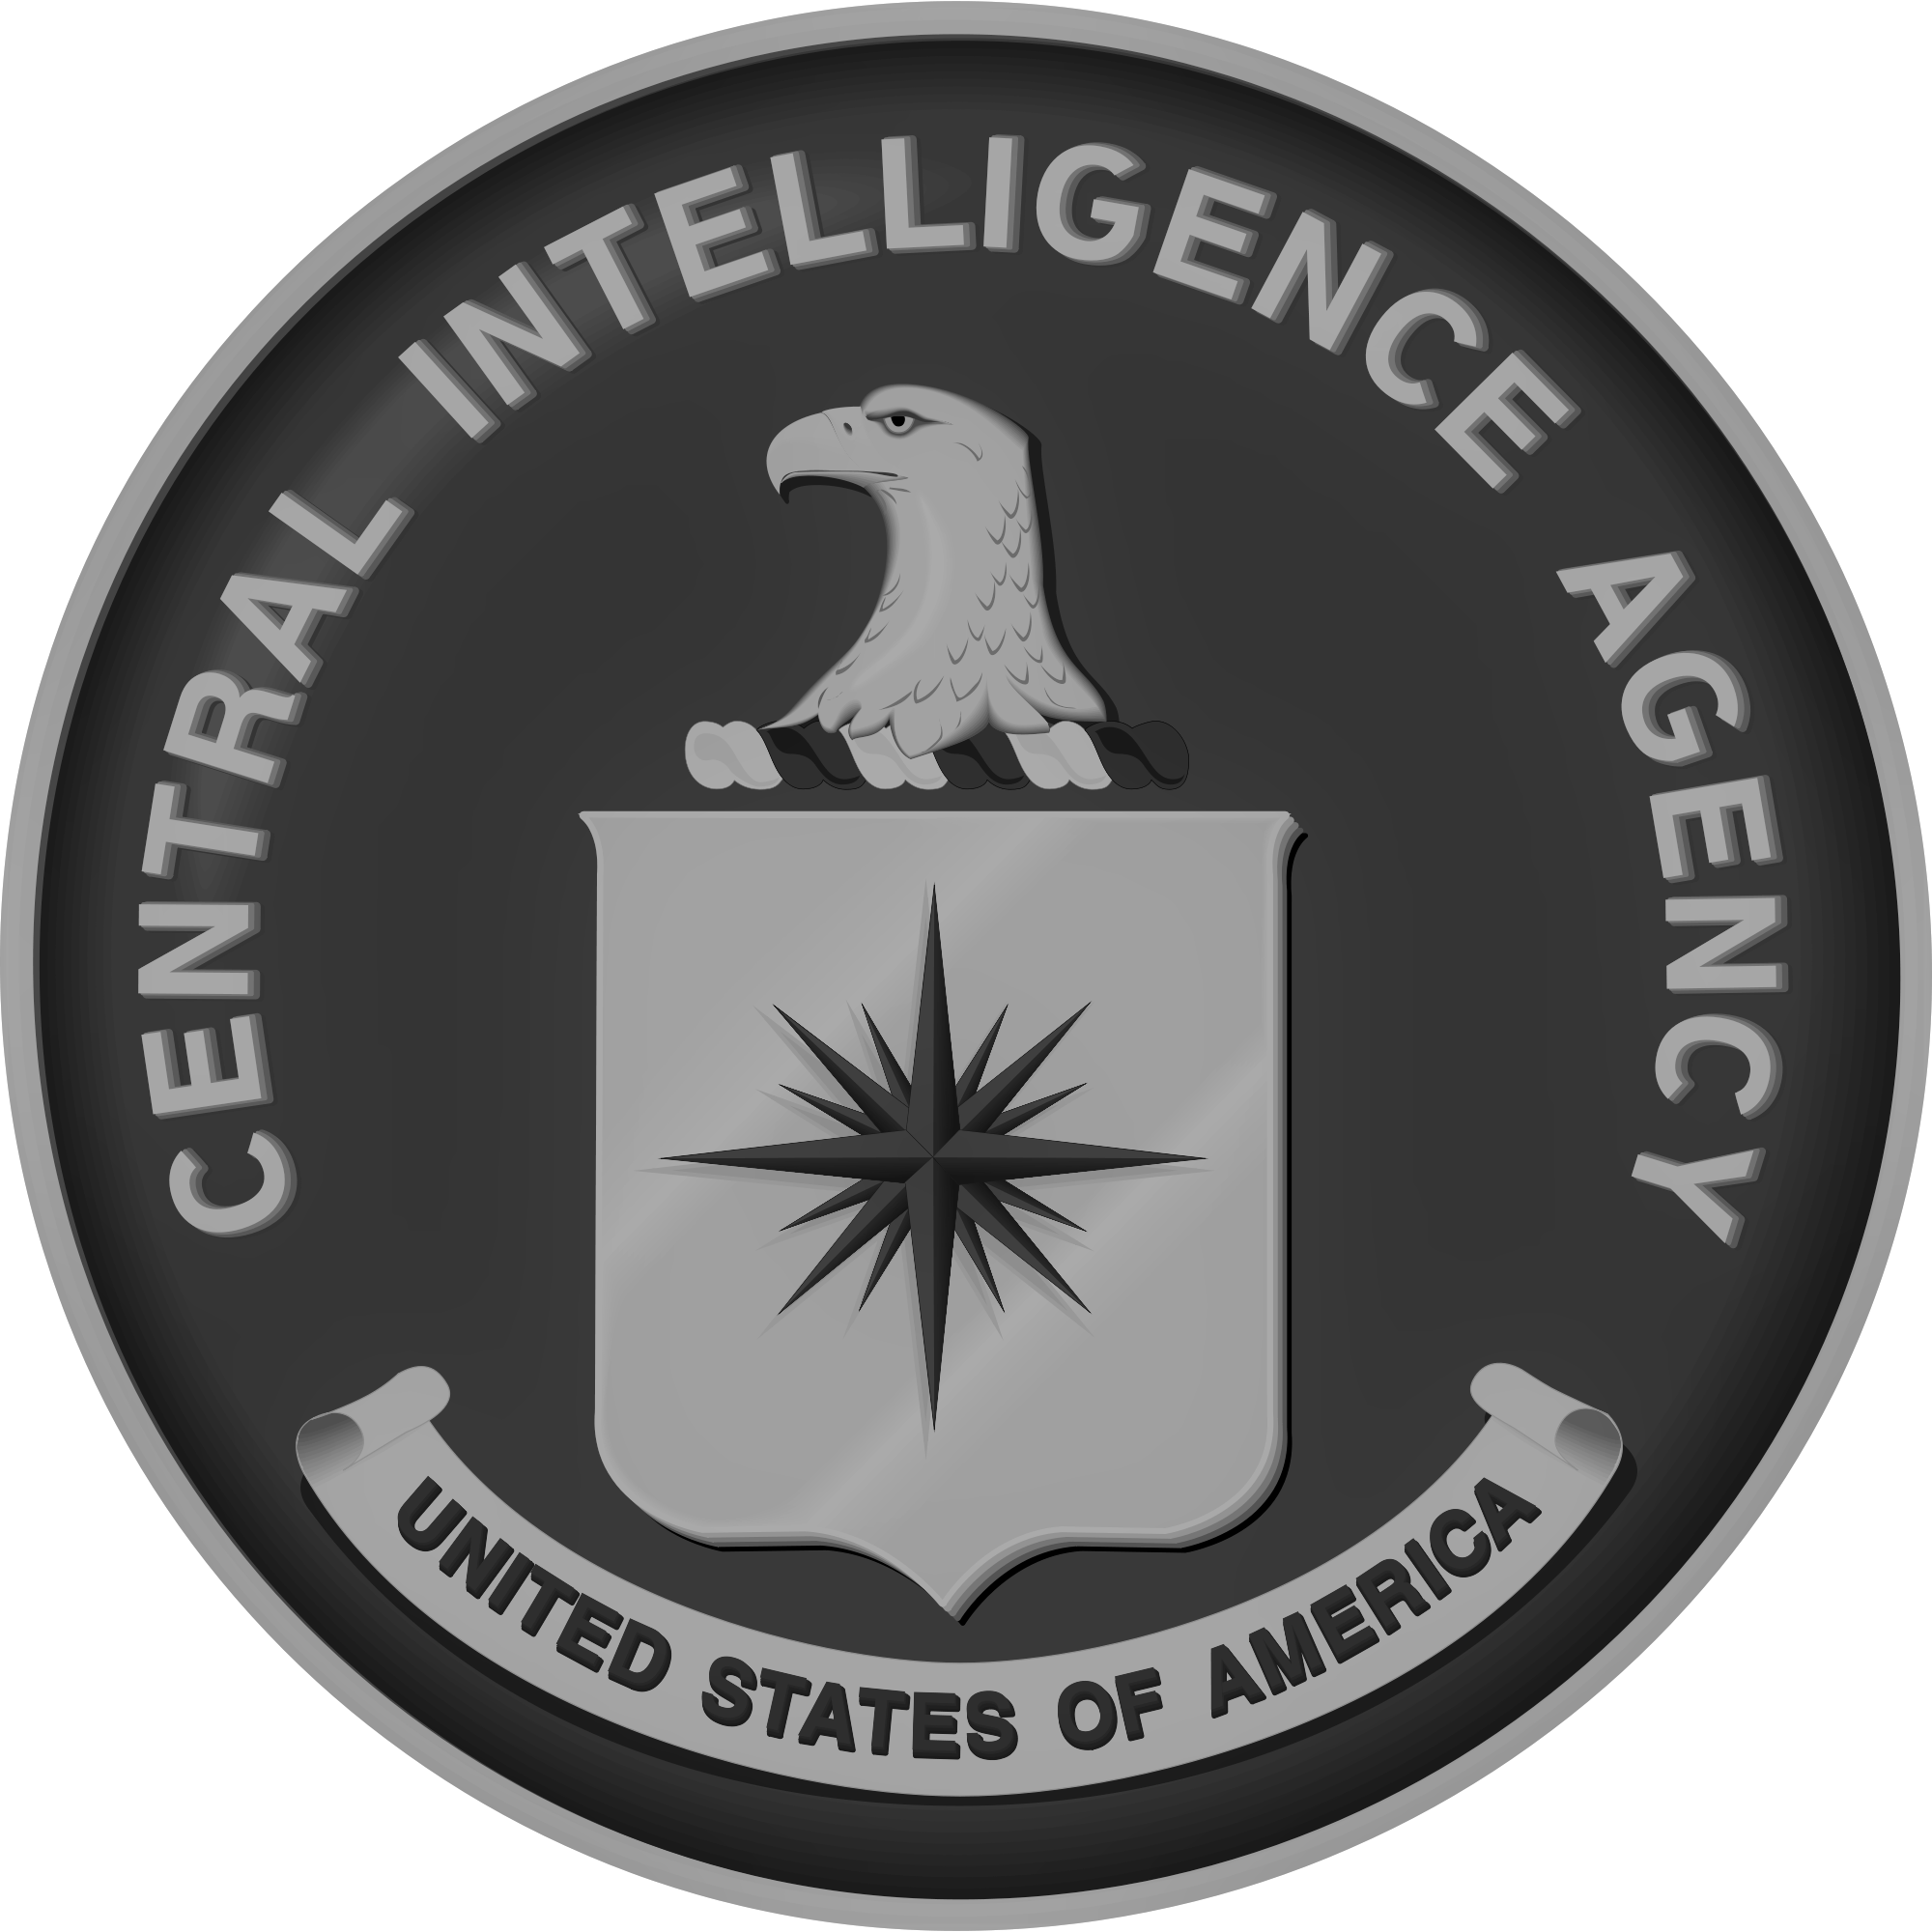 2000px-US-CentralIntelligenceAgency-Seal.svg